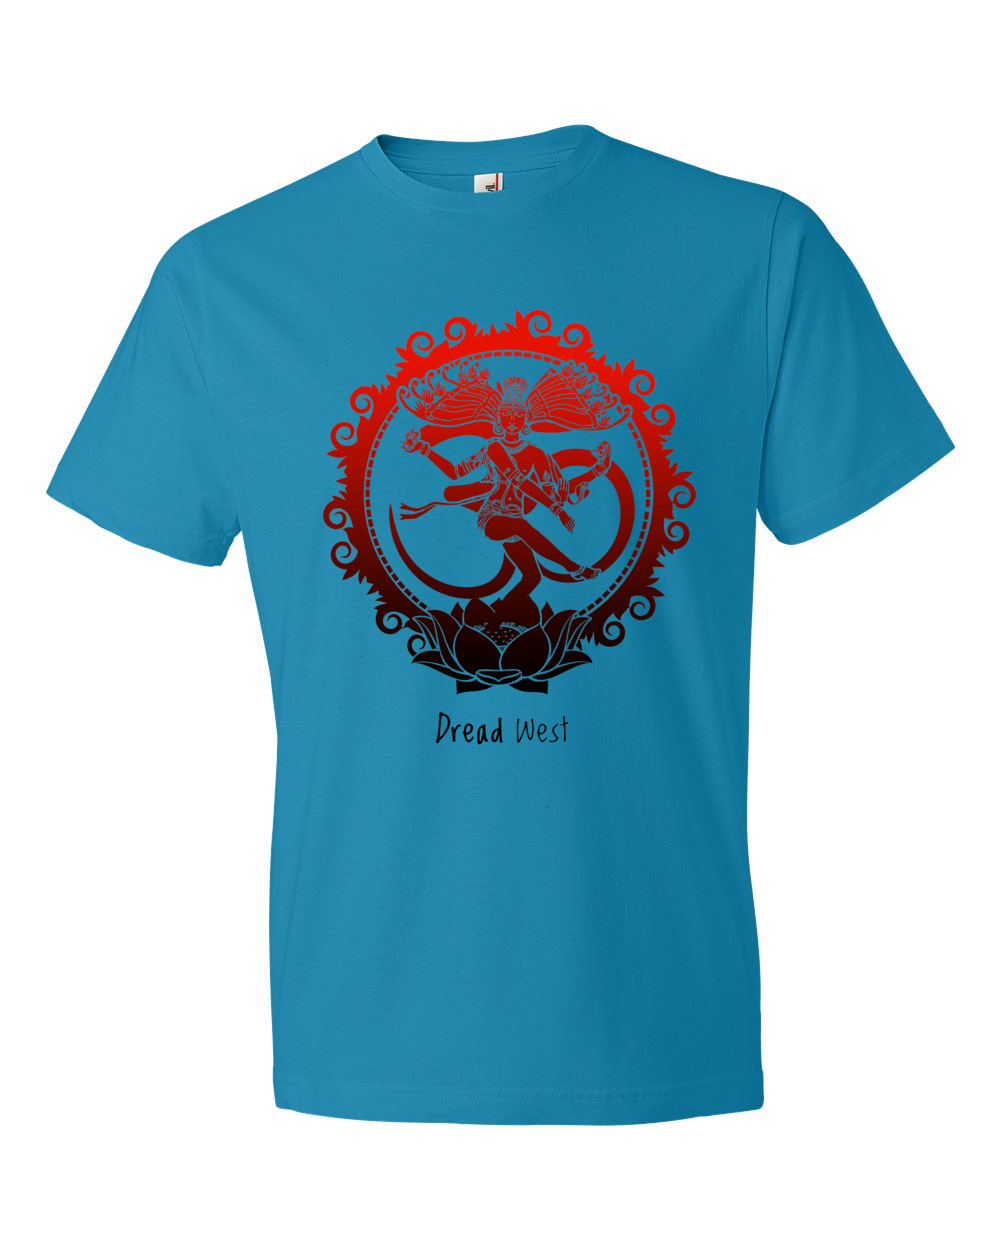 DreadWest Shiva - men's short sleeve t-shirt - DreadWest Clothing , DreadWest - DreadWest,  - Apparel, DreadWest - DreadWest